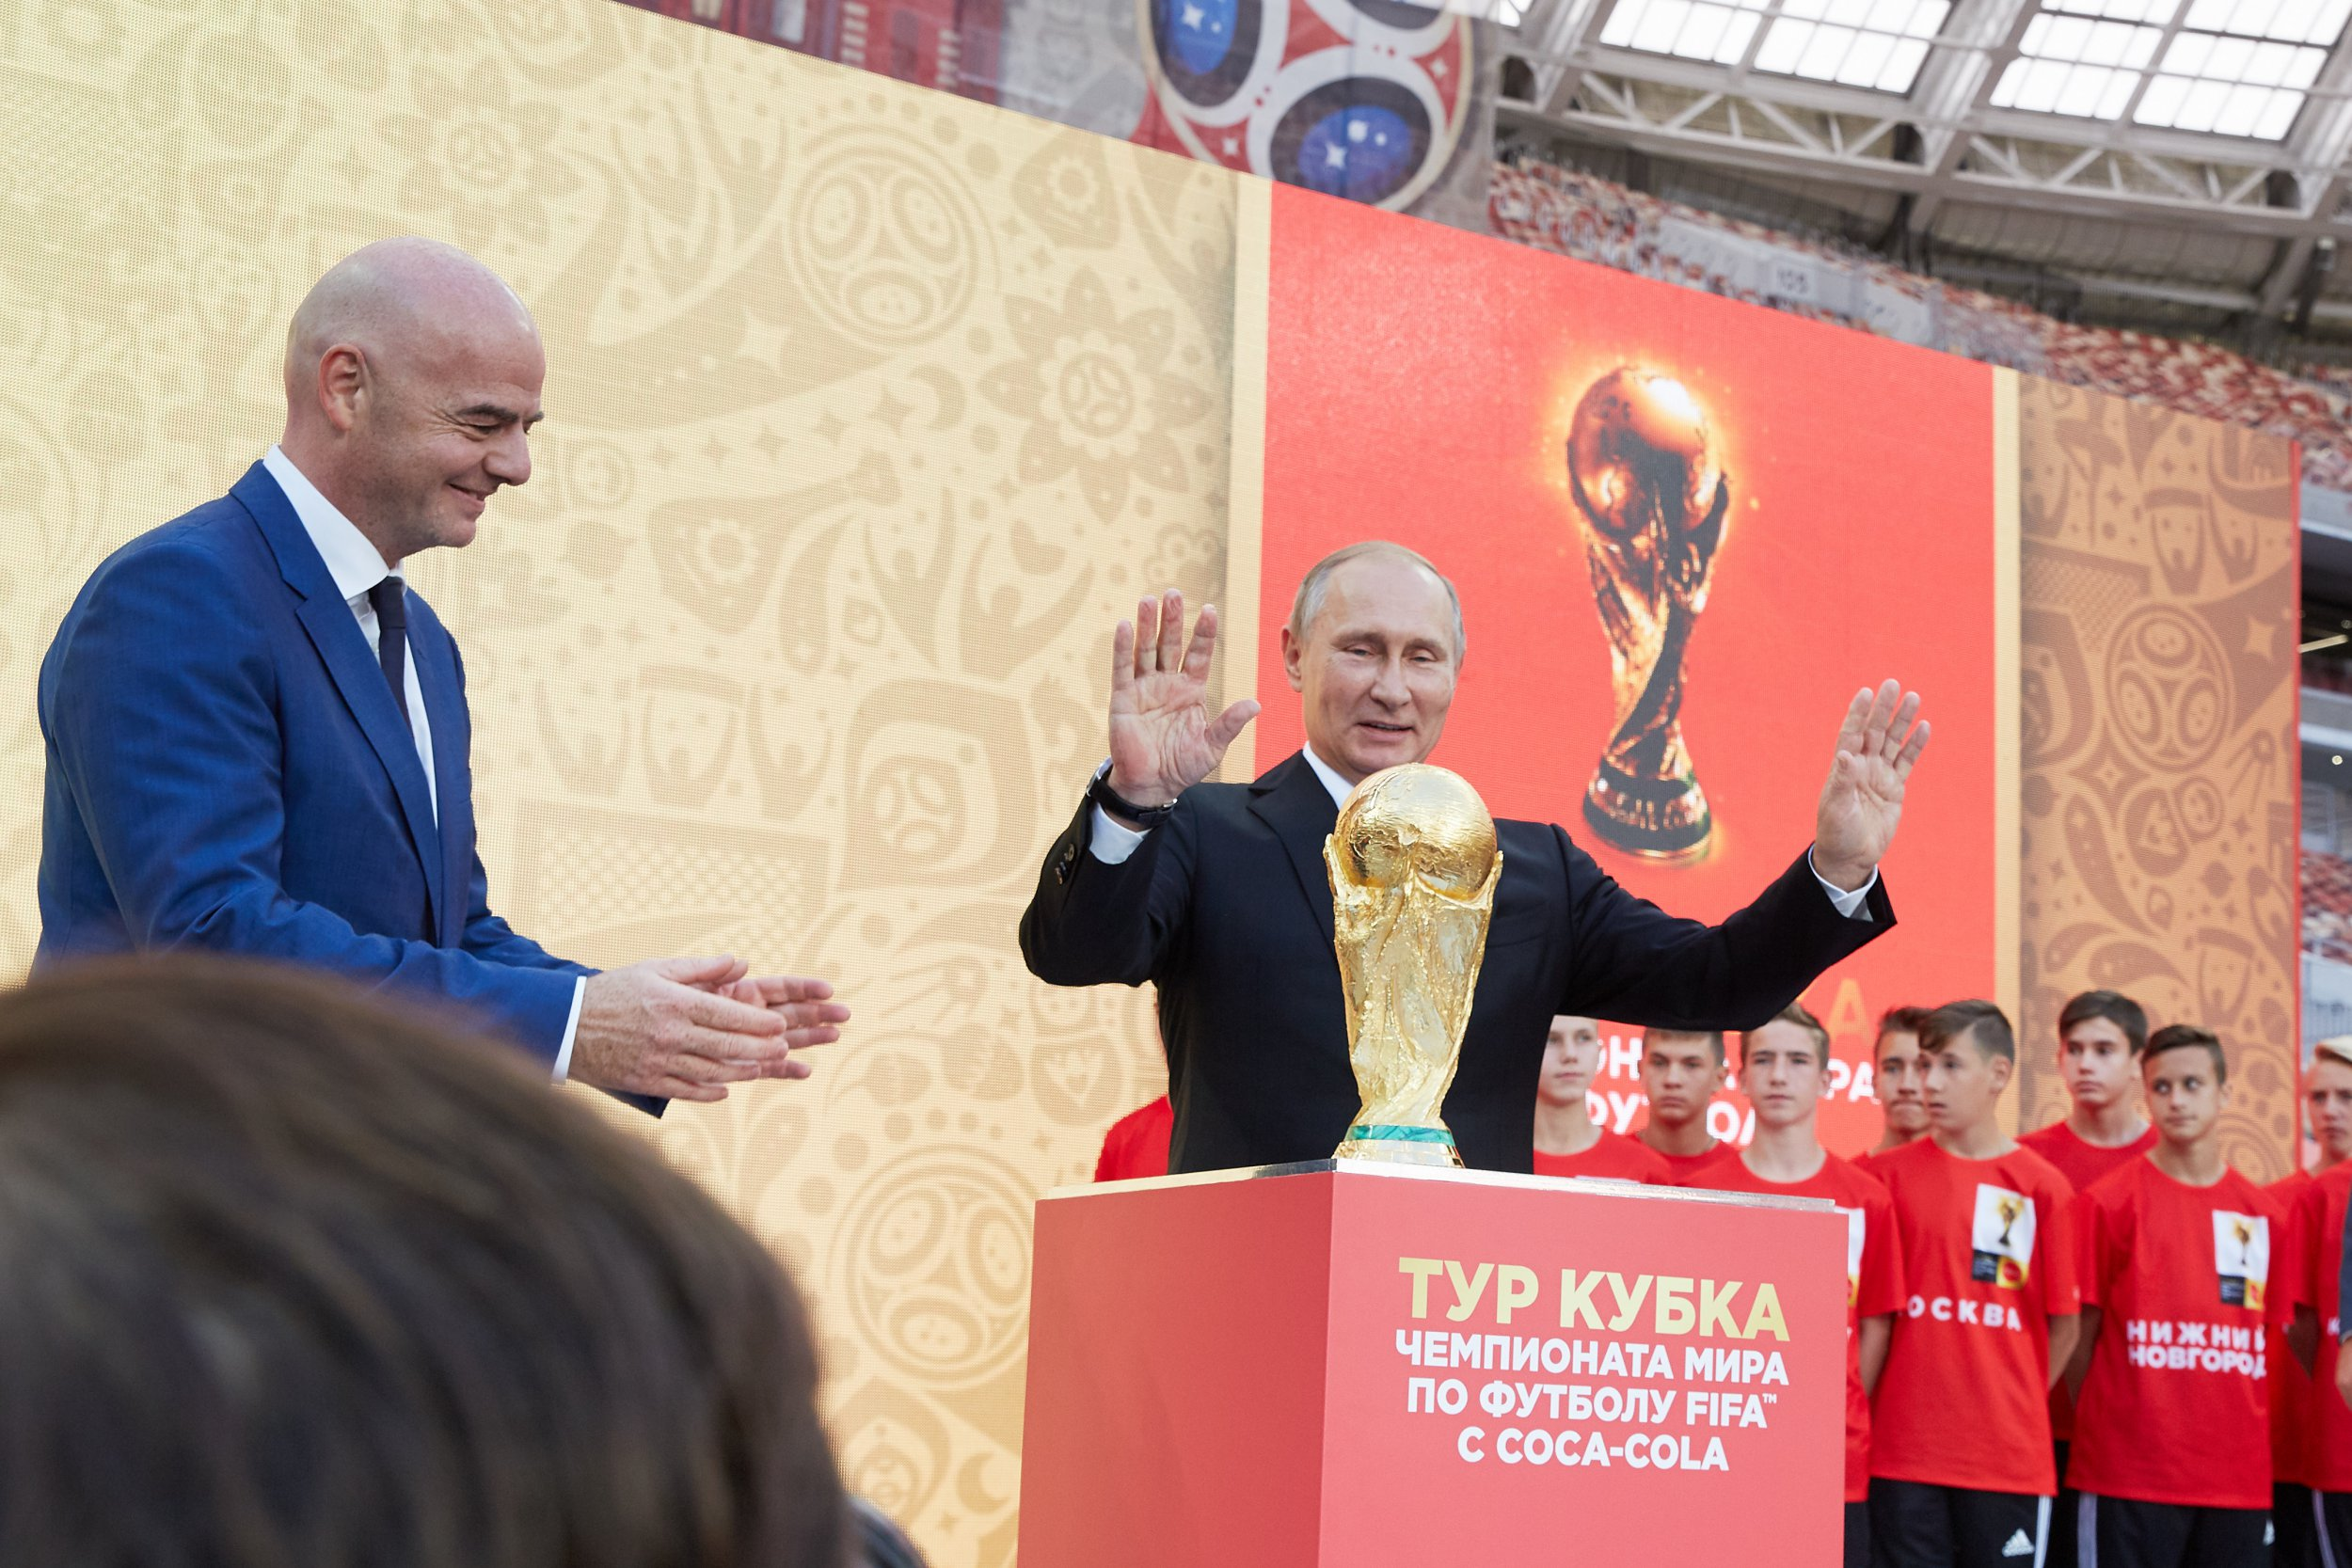 MOSCOW, RUSSIA - SEPTEMBER 09: FIFA President Gianni??Infantino and President of Russian Federation Vladimir Putin stay on the stage with a Trophy during FIFA World Cup Trophy Tour at Luzhniki stadium on September 9, 2017 in Moscow, Russia. (Photo by Oleg Nikishin - FIFA/FIFA via Getty Images)